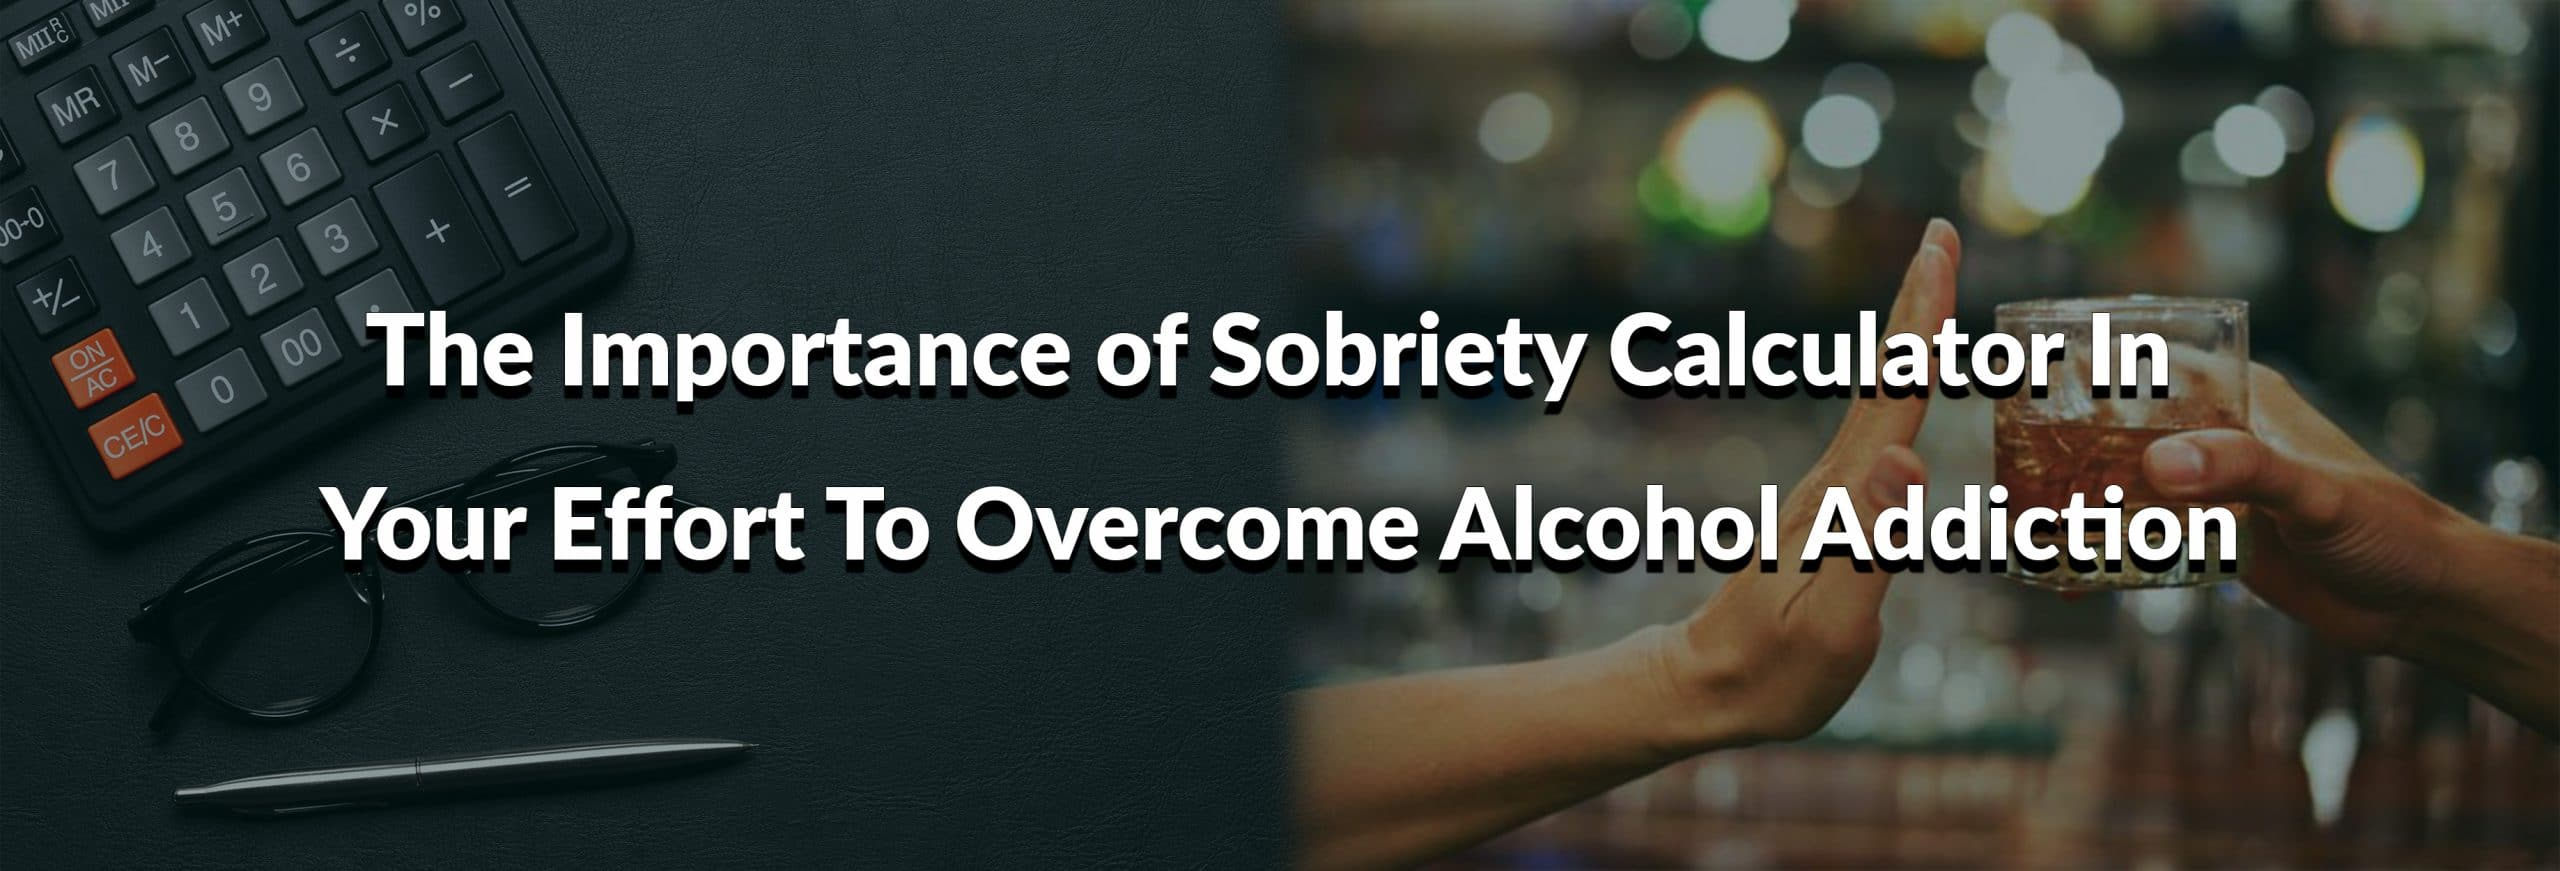 The Importance of Sobriety Calculator In Your Effort To Overcome Alcohol Addiction